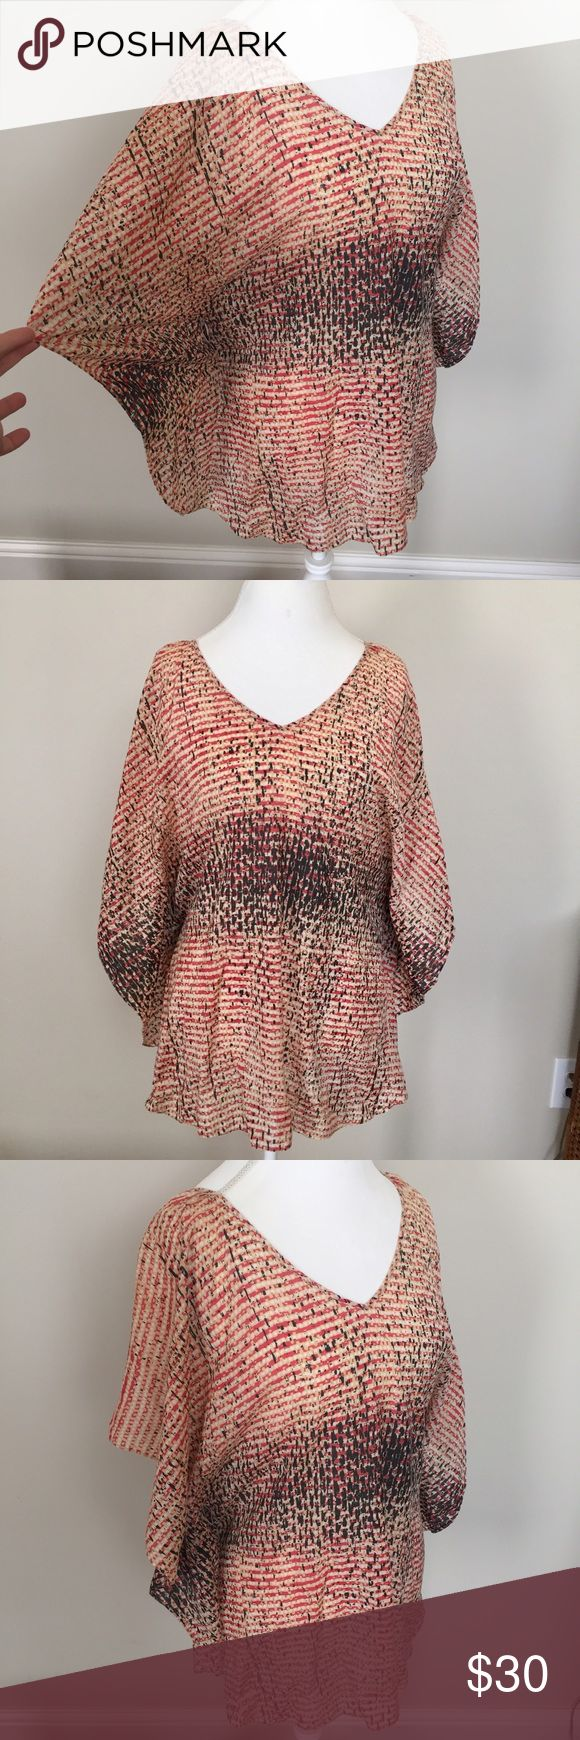 Anthropologie Lil Batwing Dolman Tunic Top Pretty multicolor printed Batwing Tunic Top by Lil from Anthropologie. Excellent condition with no flaws. Size 4 and fits like a true small. ❤No trades or holds. I accept reasonable offers. I only negotiate through the offer button. I do not model. 🚭🐩B3 Anthropologie Tops Tunics